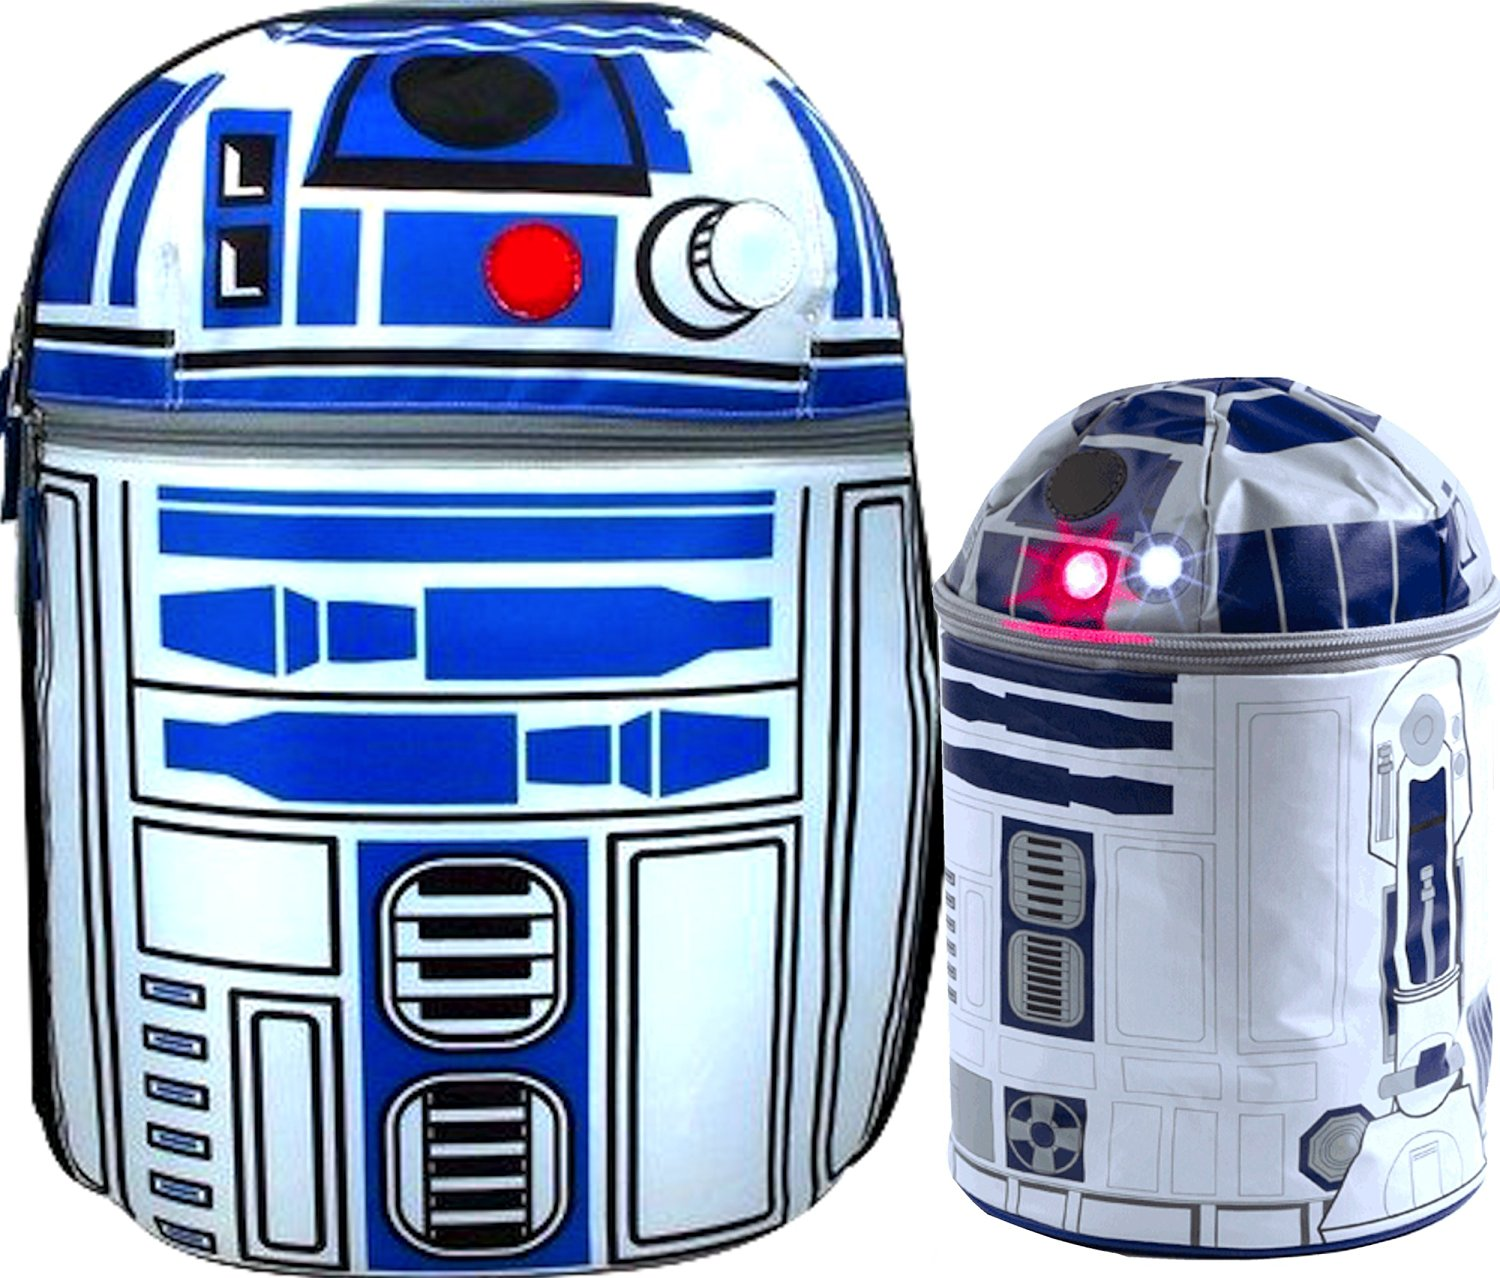 Star Wars R2d2 on Patrol 16 Backpack with Lights and Sounds Effects, with Star Wars R2-d2 Novelty Lunch Box Makes R2d2 Sounds Complete Star Wars Gift SET